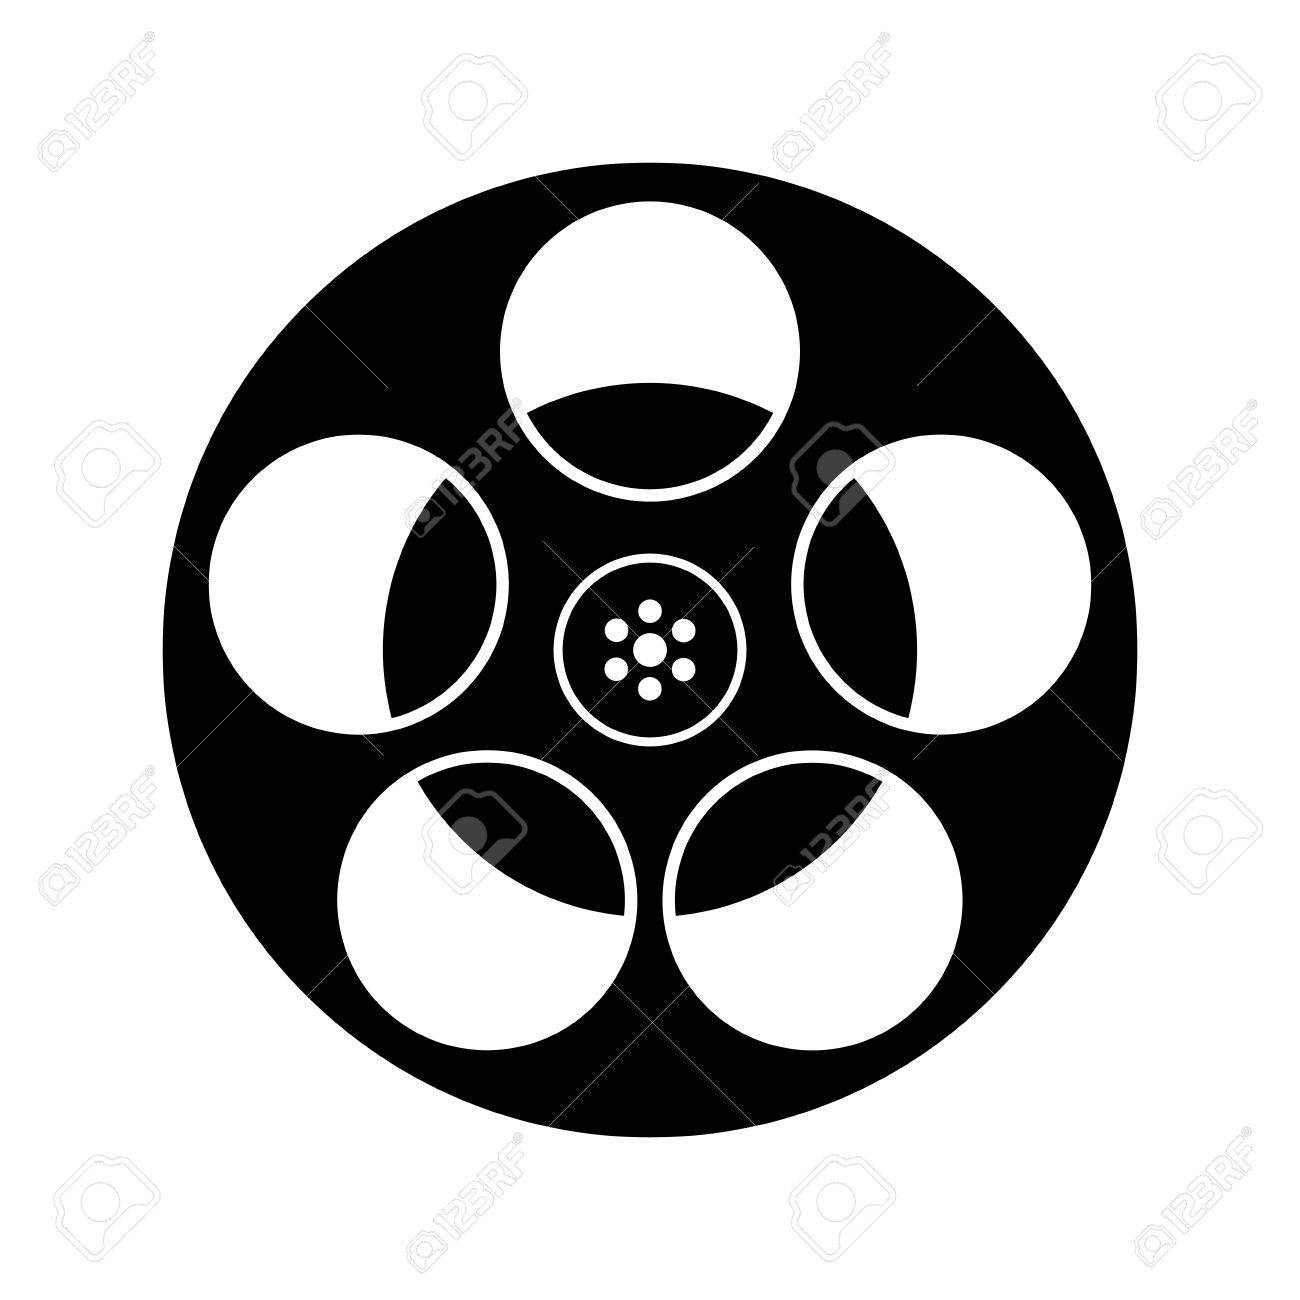 Black And White Film Reel Icon Isolated.